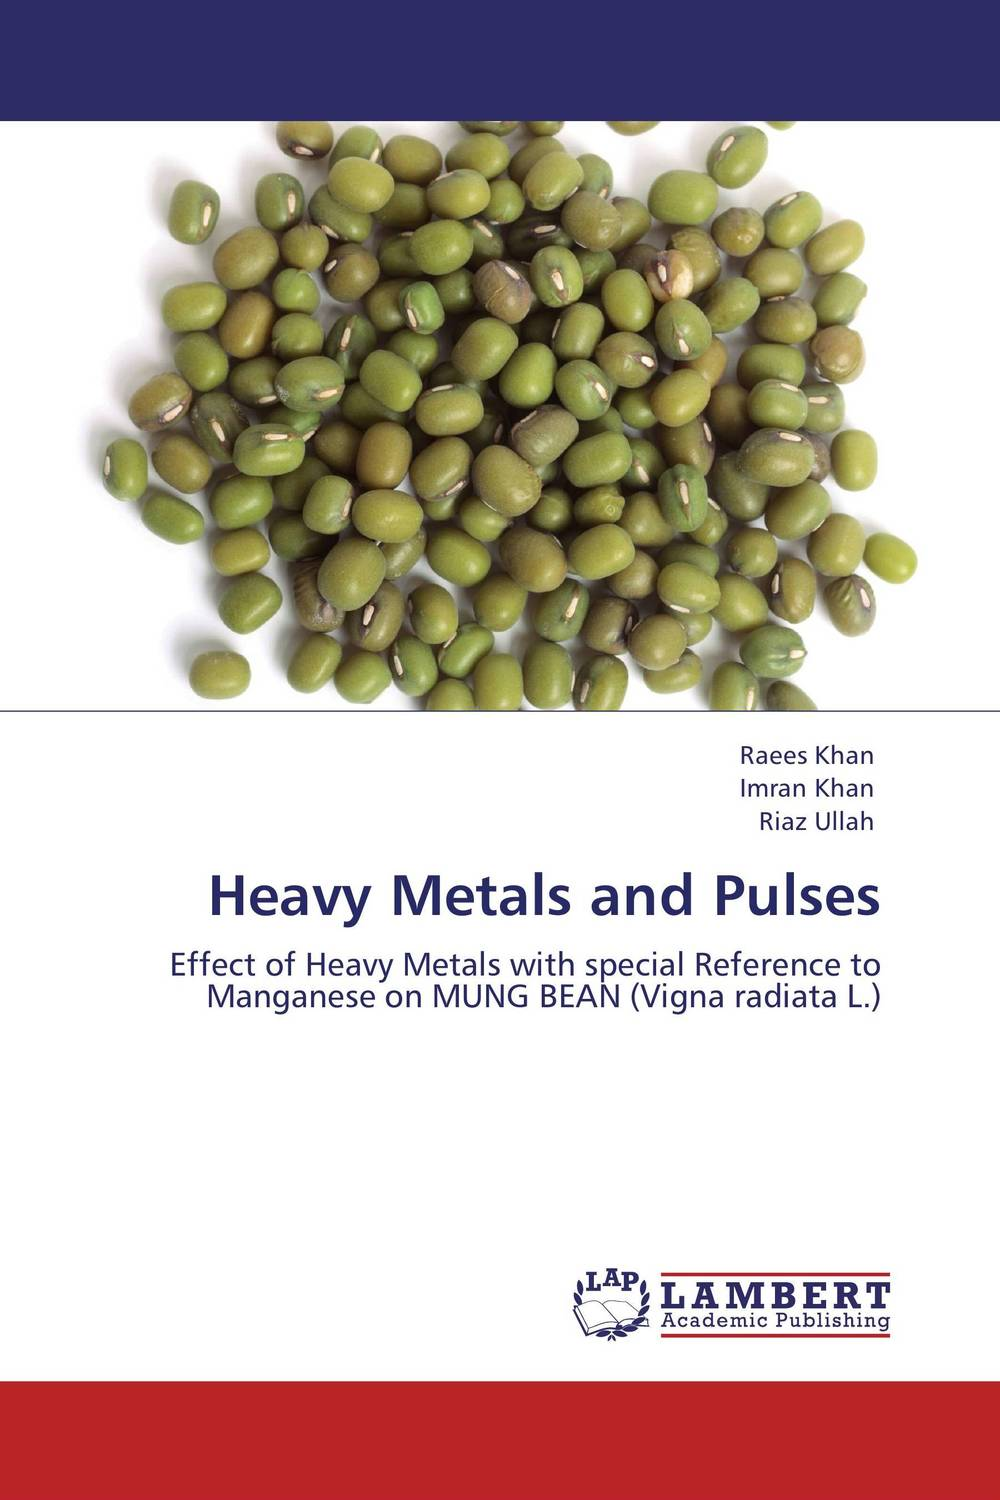 Heavy Metals and Pulses marwan a ibrahim effect of heavy metals on haematological and testicular functions